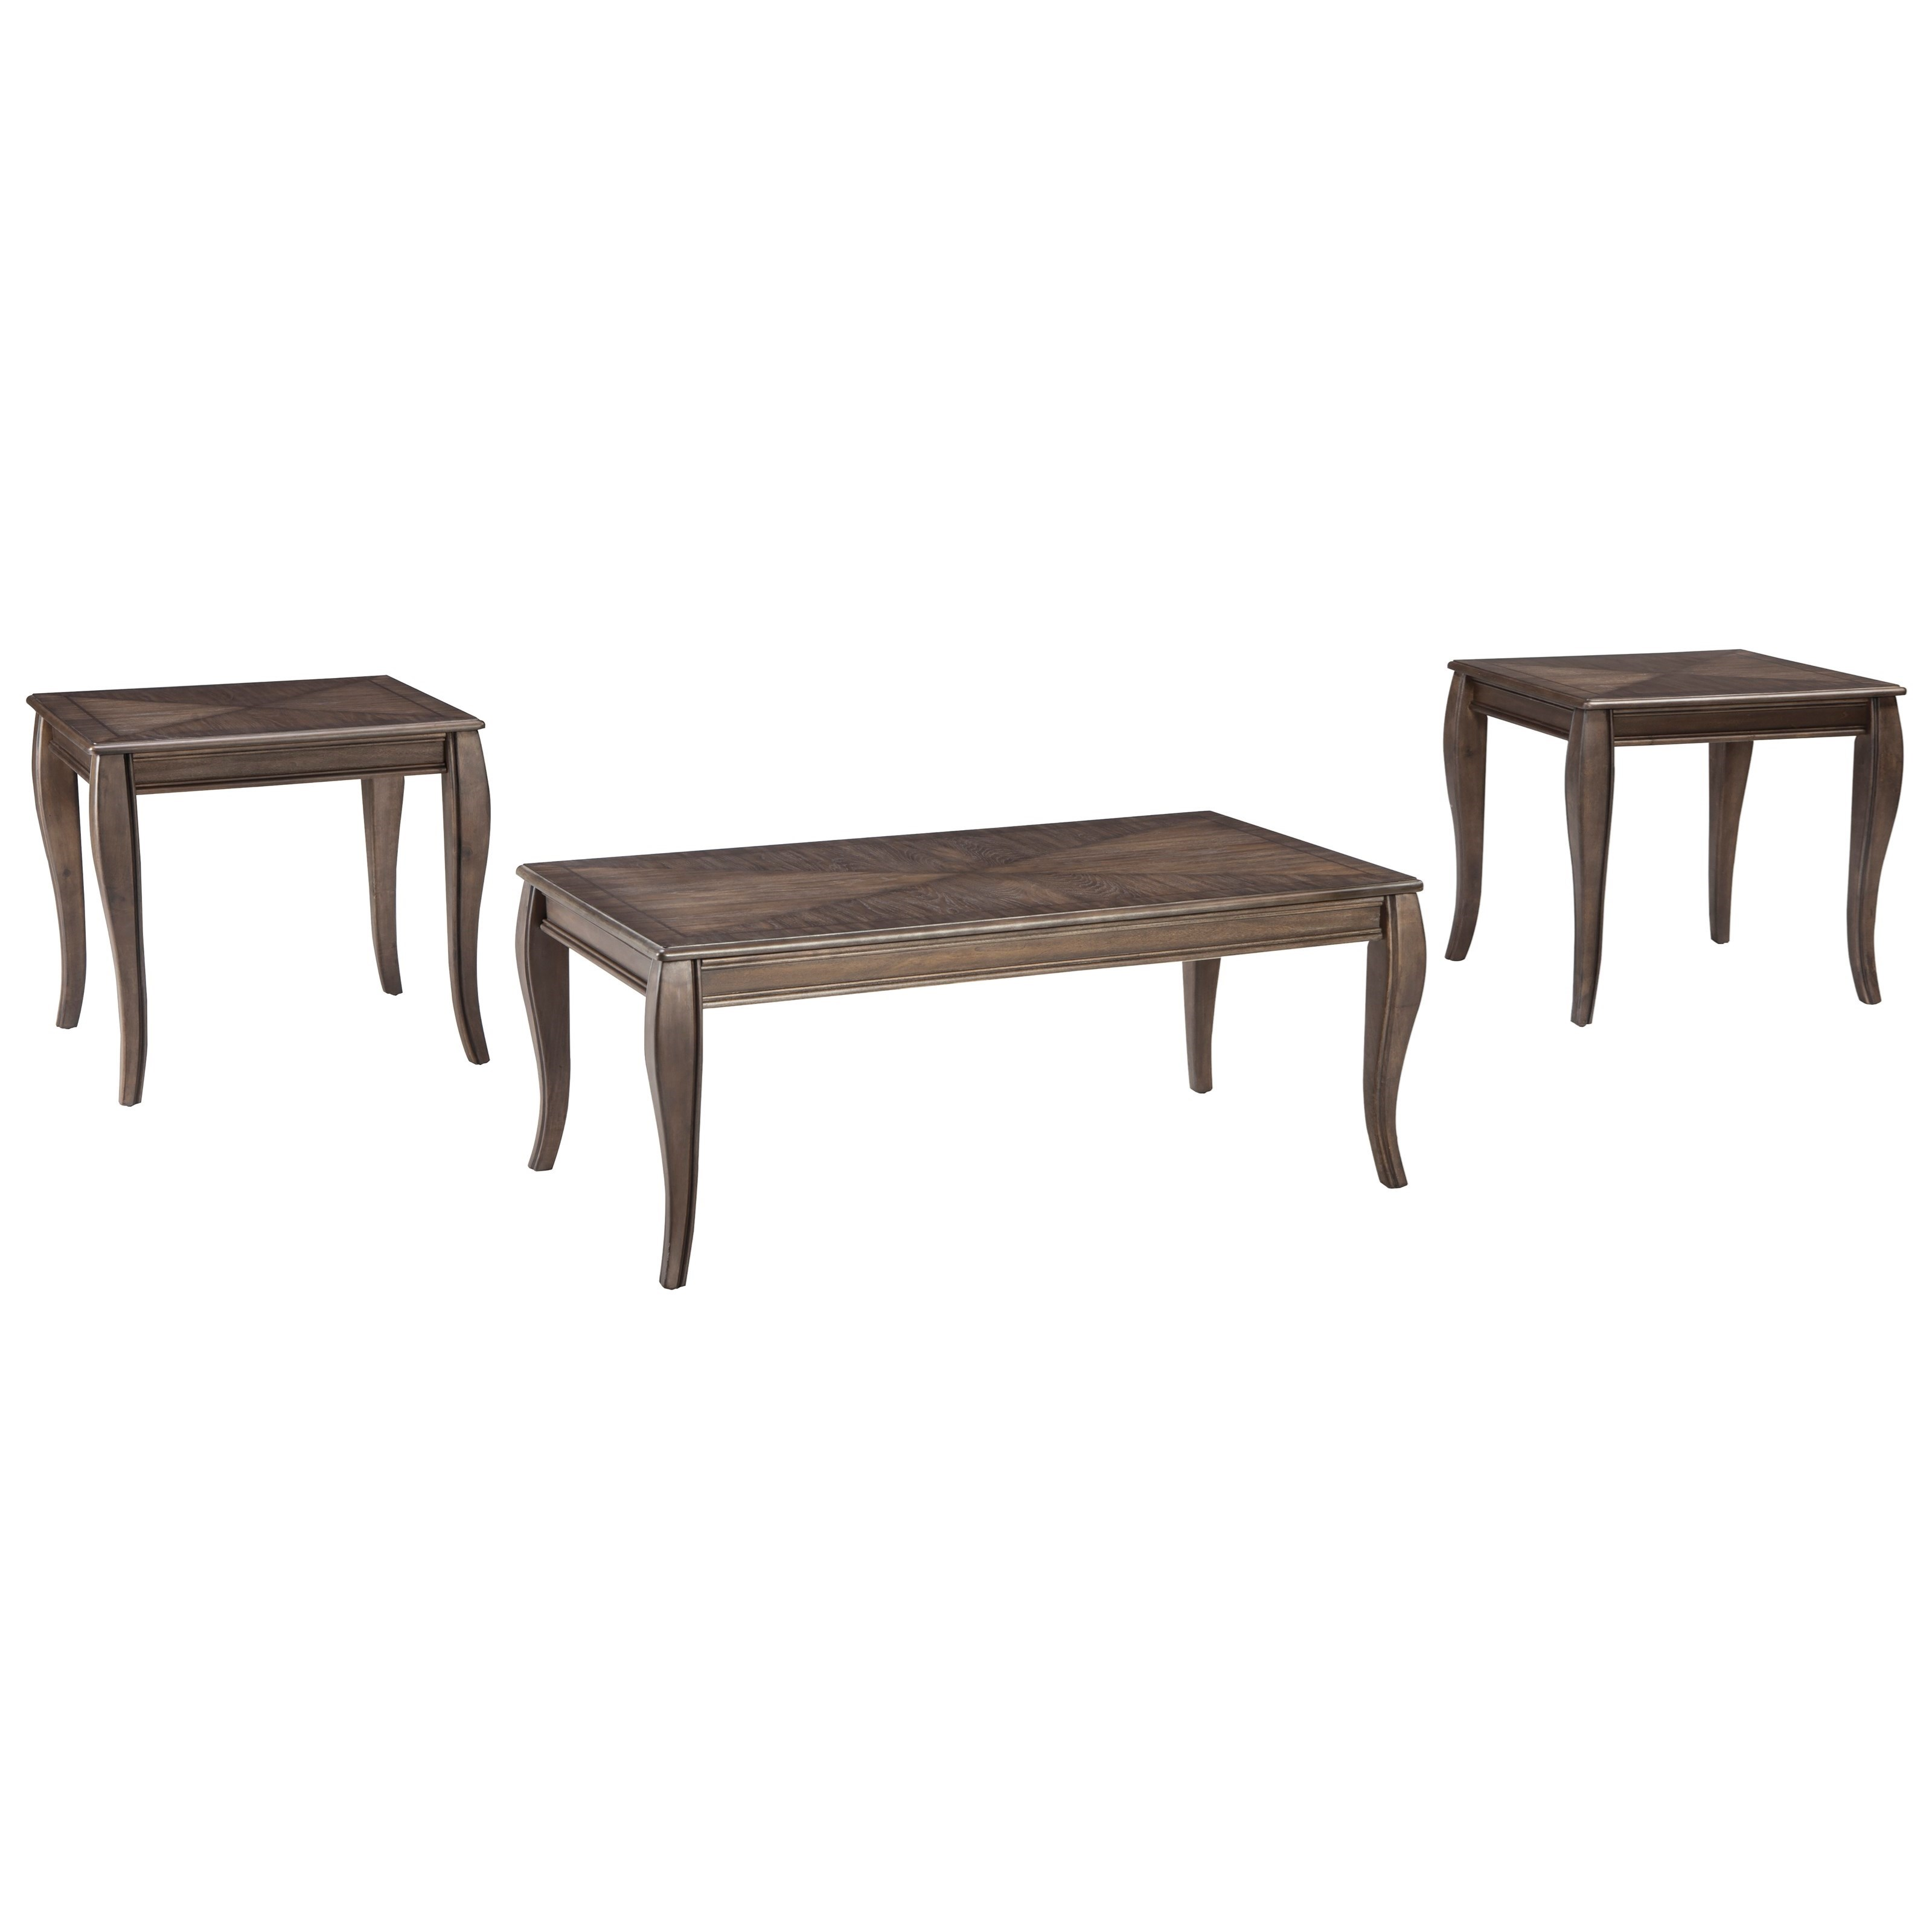 Styleline Vintelli T316 13 Occasional Table Set With Inlay Tabletop Design Efo Furniture